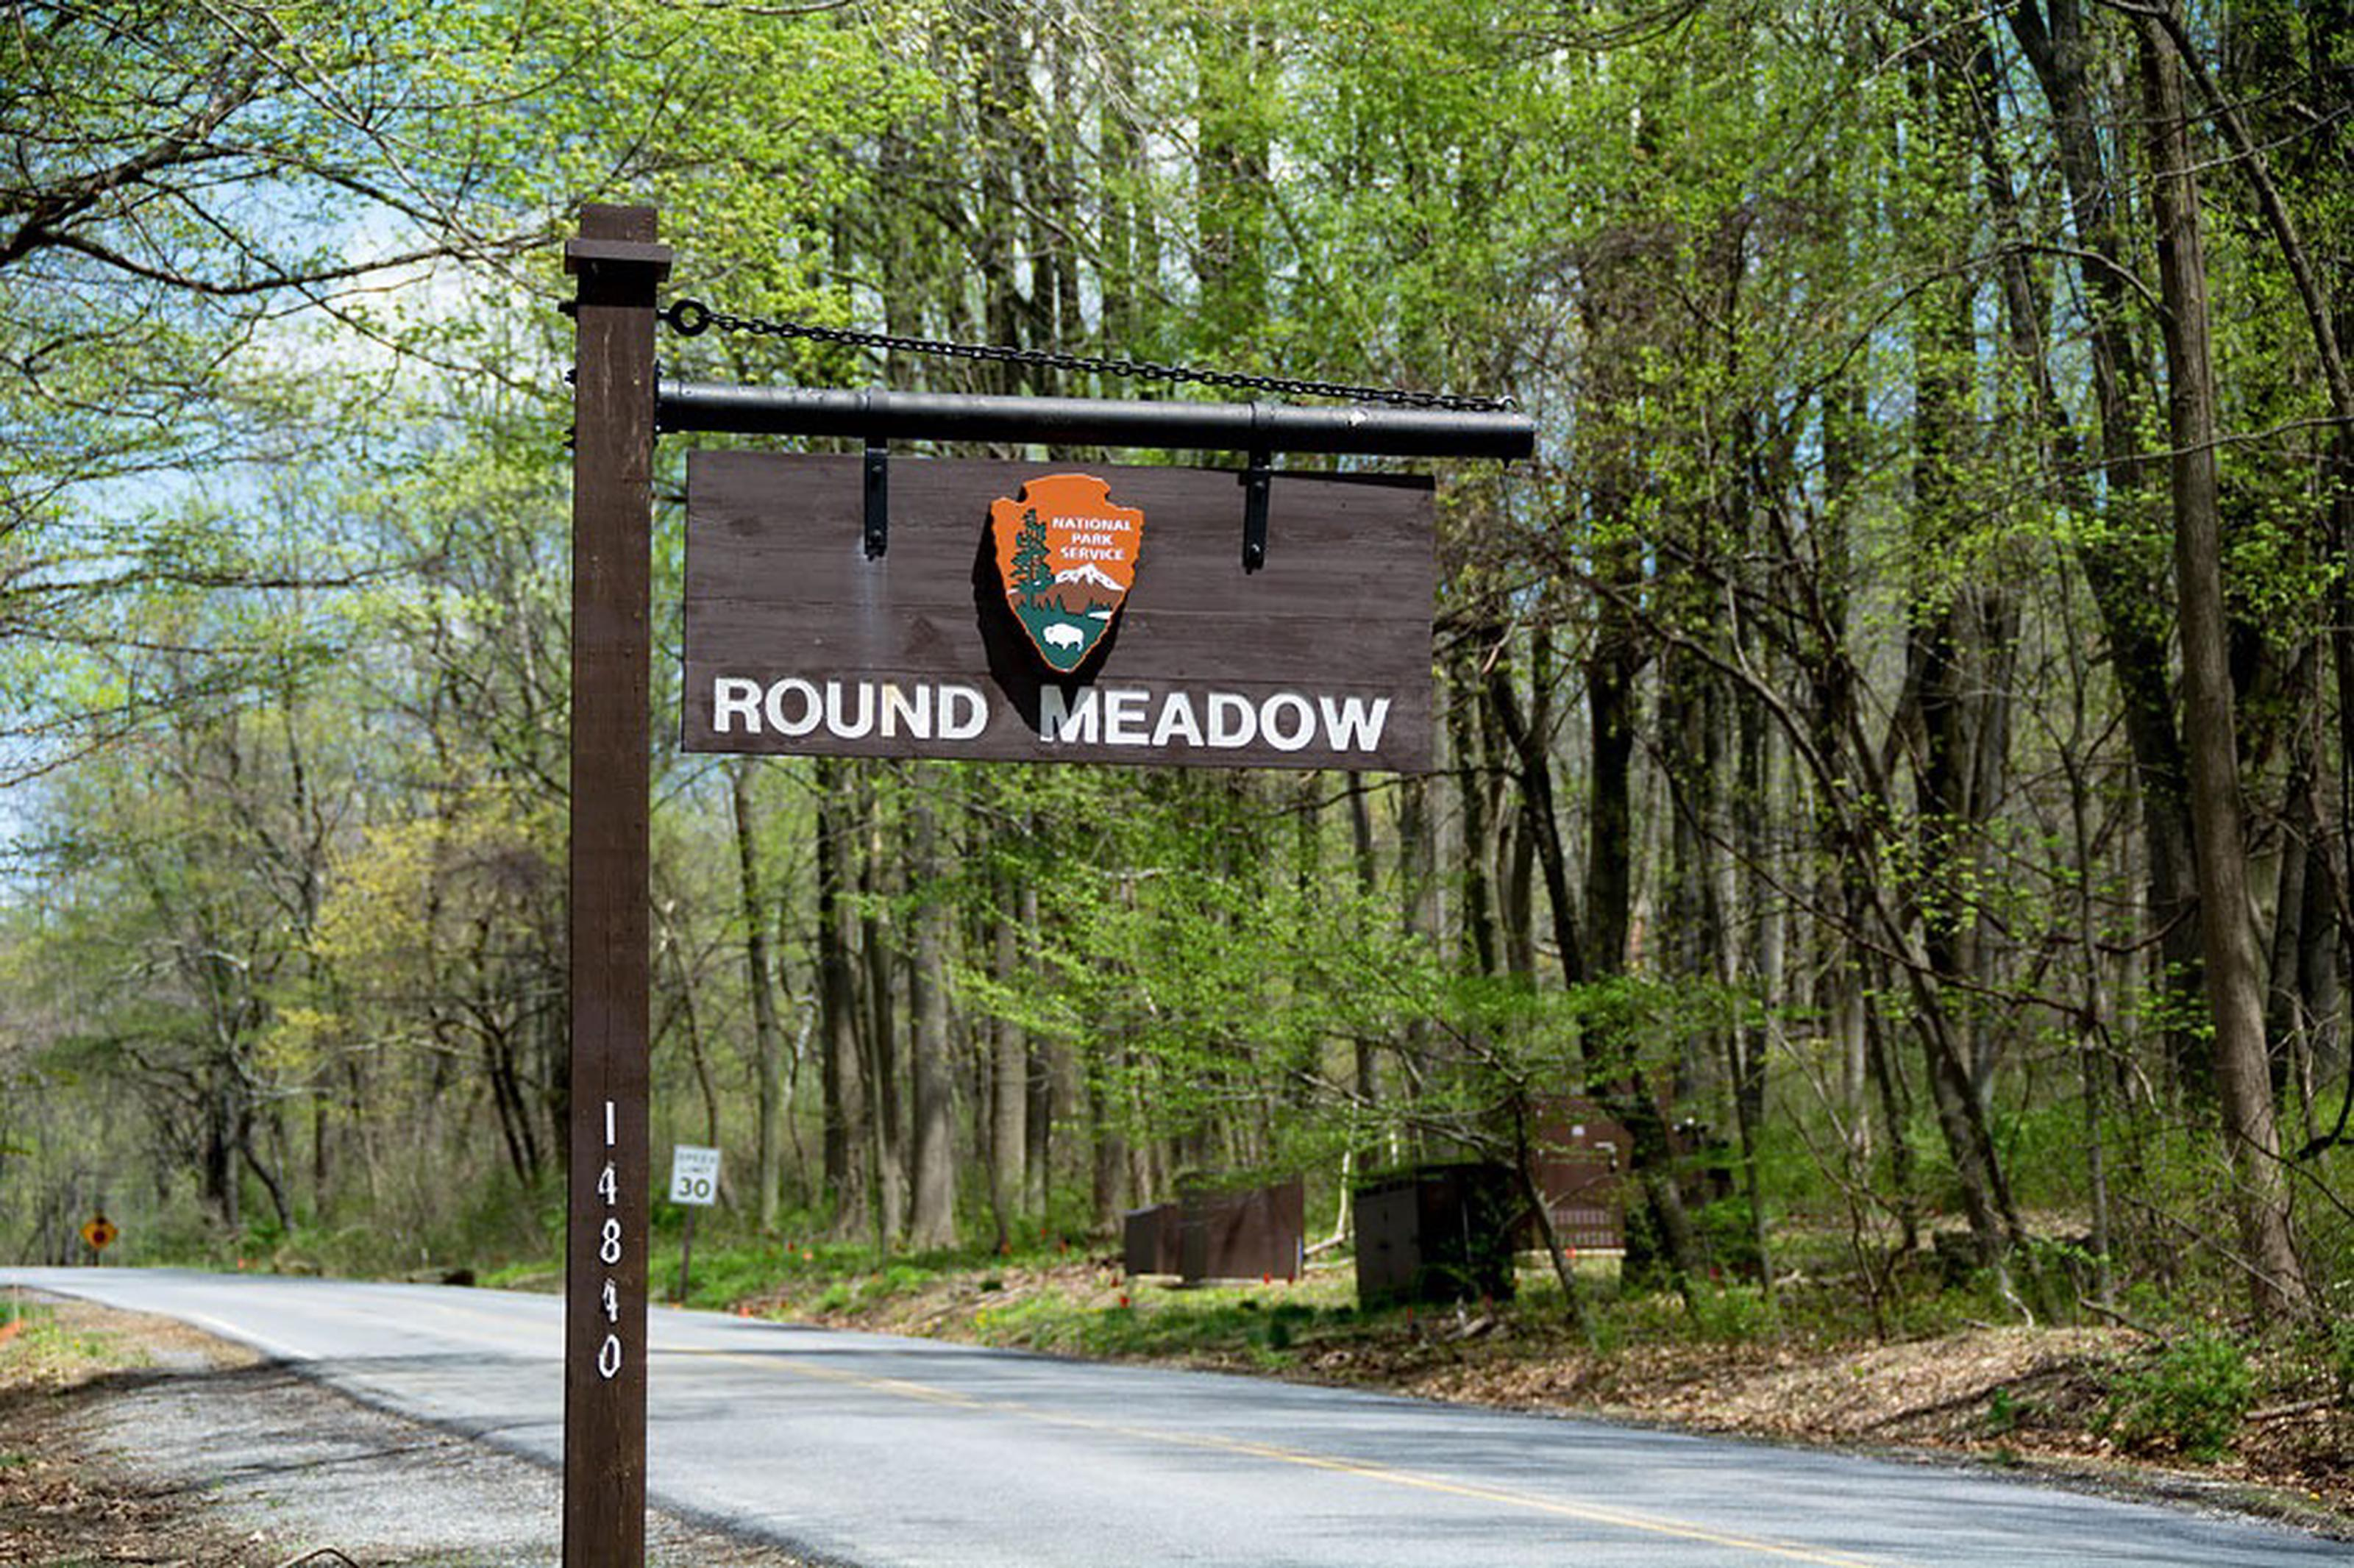 Camp Round Meadow Road SignCamp Round Meadow Road Sign on Manahan Road